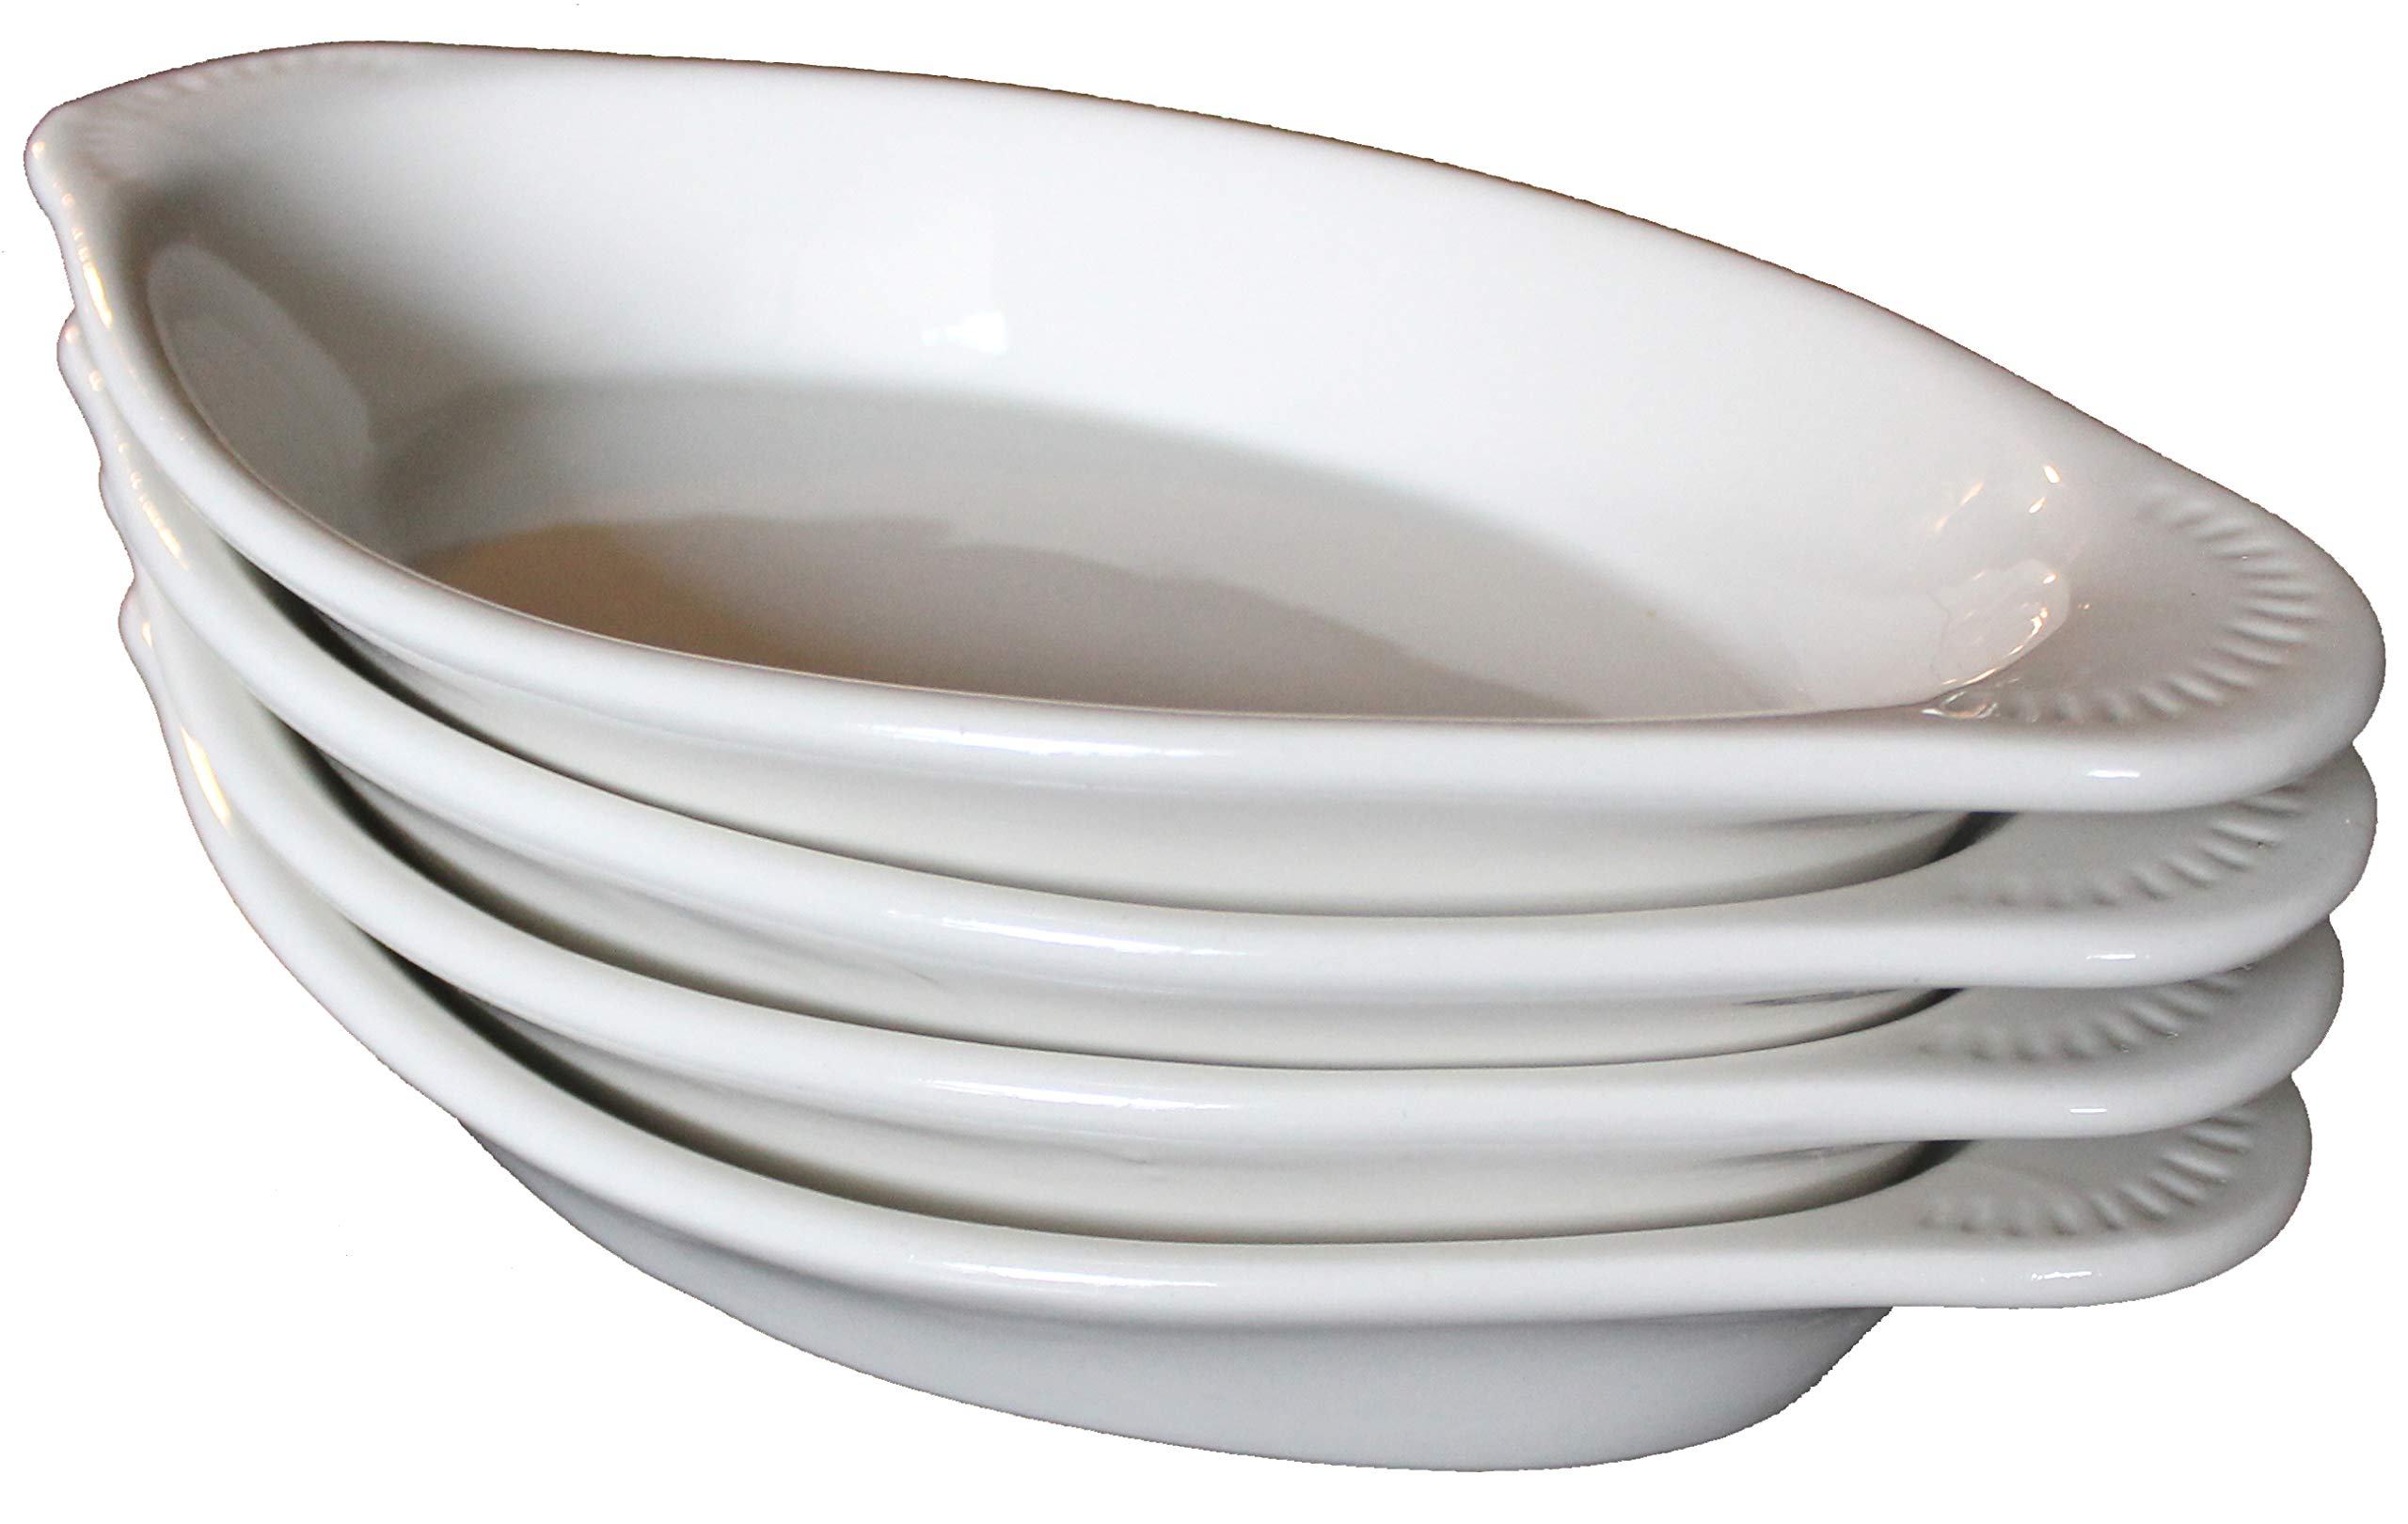 MinWill Brands Ceramic Oval Au Gratin/Rarebit Baking Dish with Pan Scraper (4-Pack, 15 Ounce, Bone White) by MinWill Brands (Image #1)